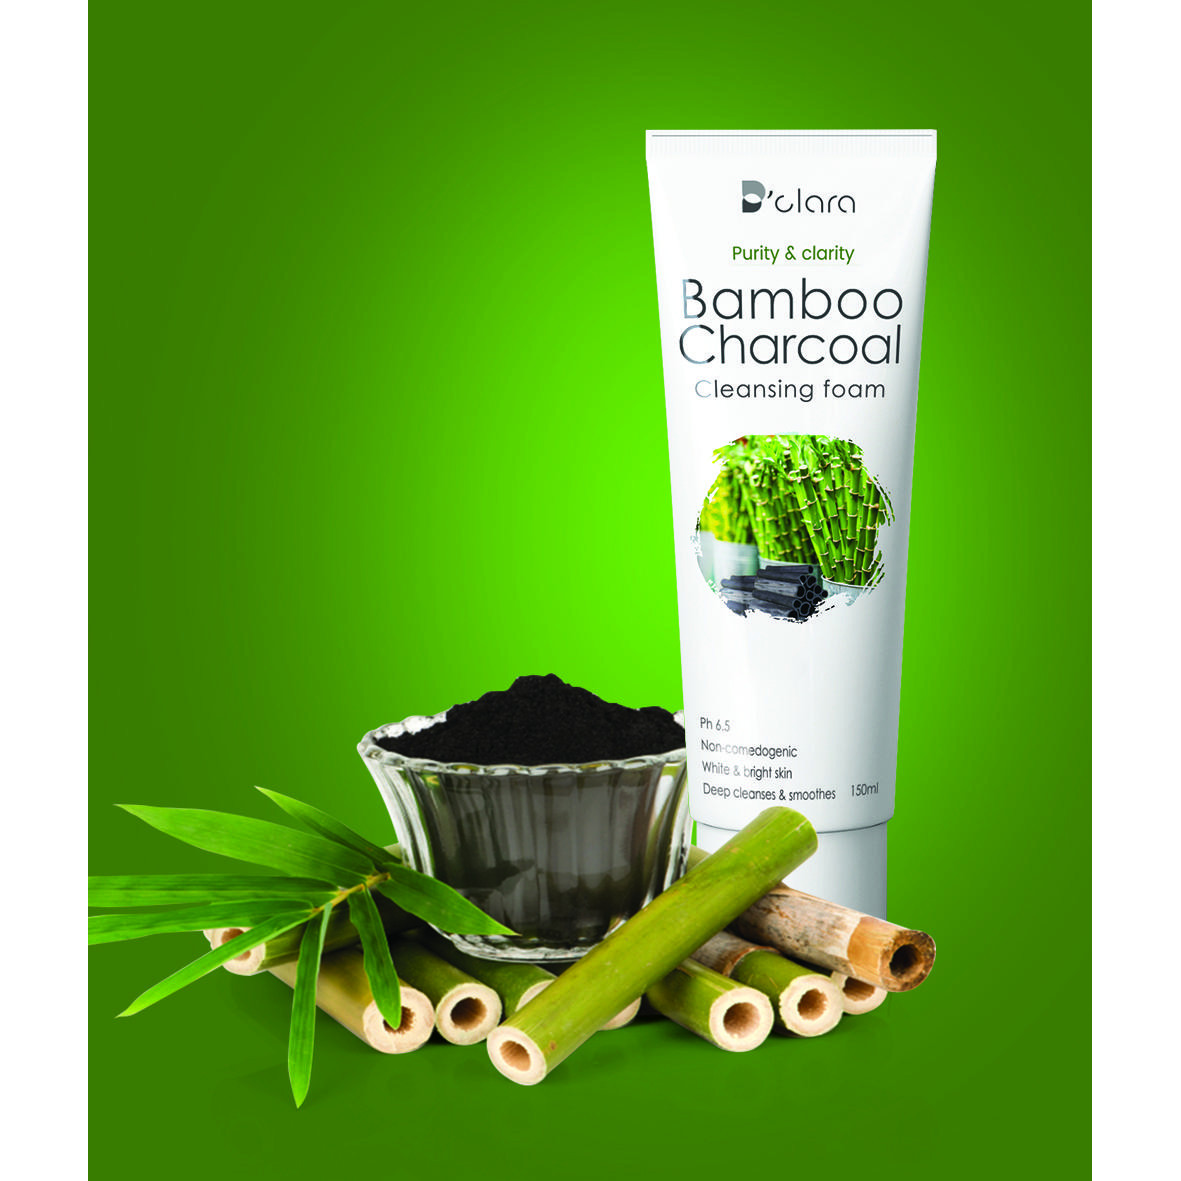 Bamboo charcoal cleansing foam